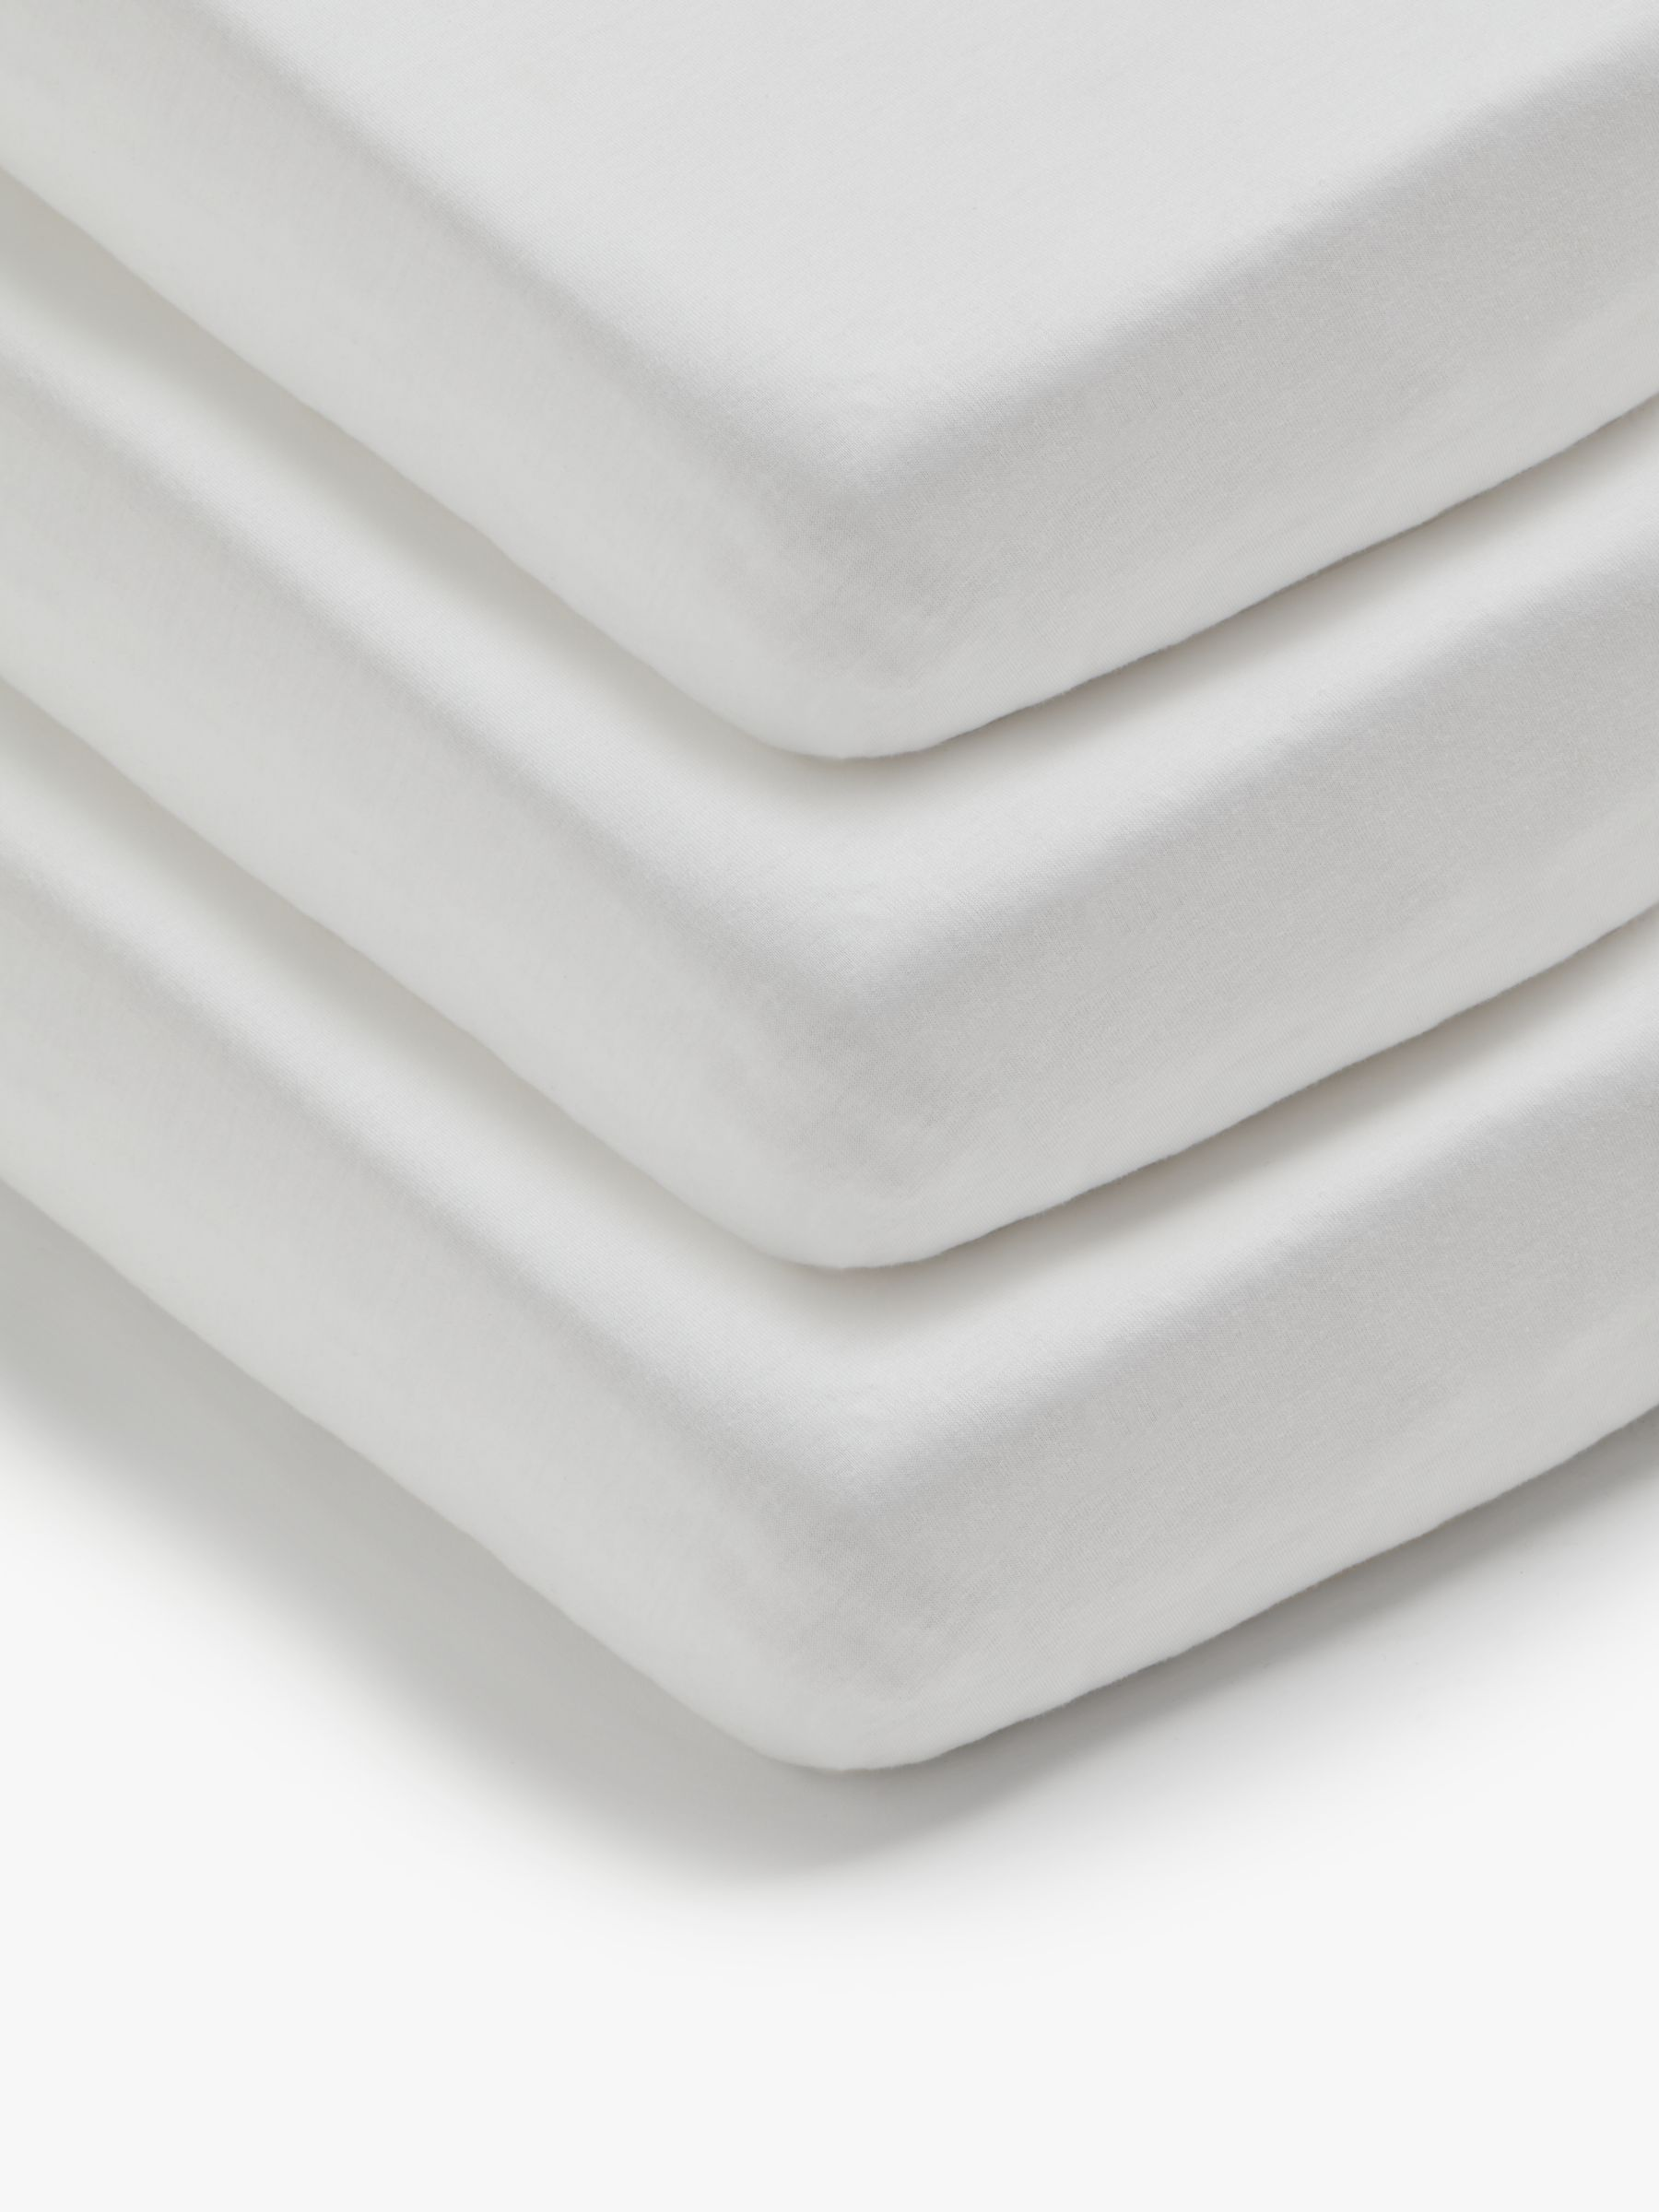 ANYDAY John Lewis & Partners Cotton Fitted Cot Sheet, Pack of 3, 60 x 120cm, White